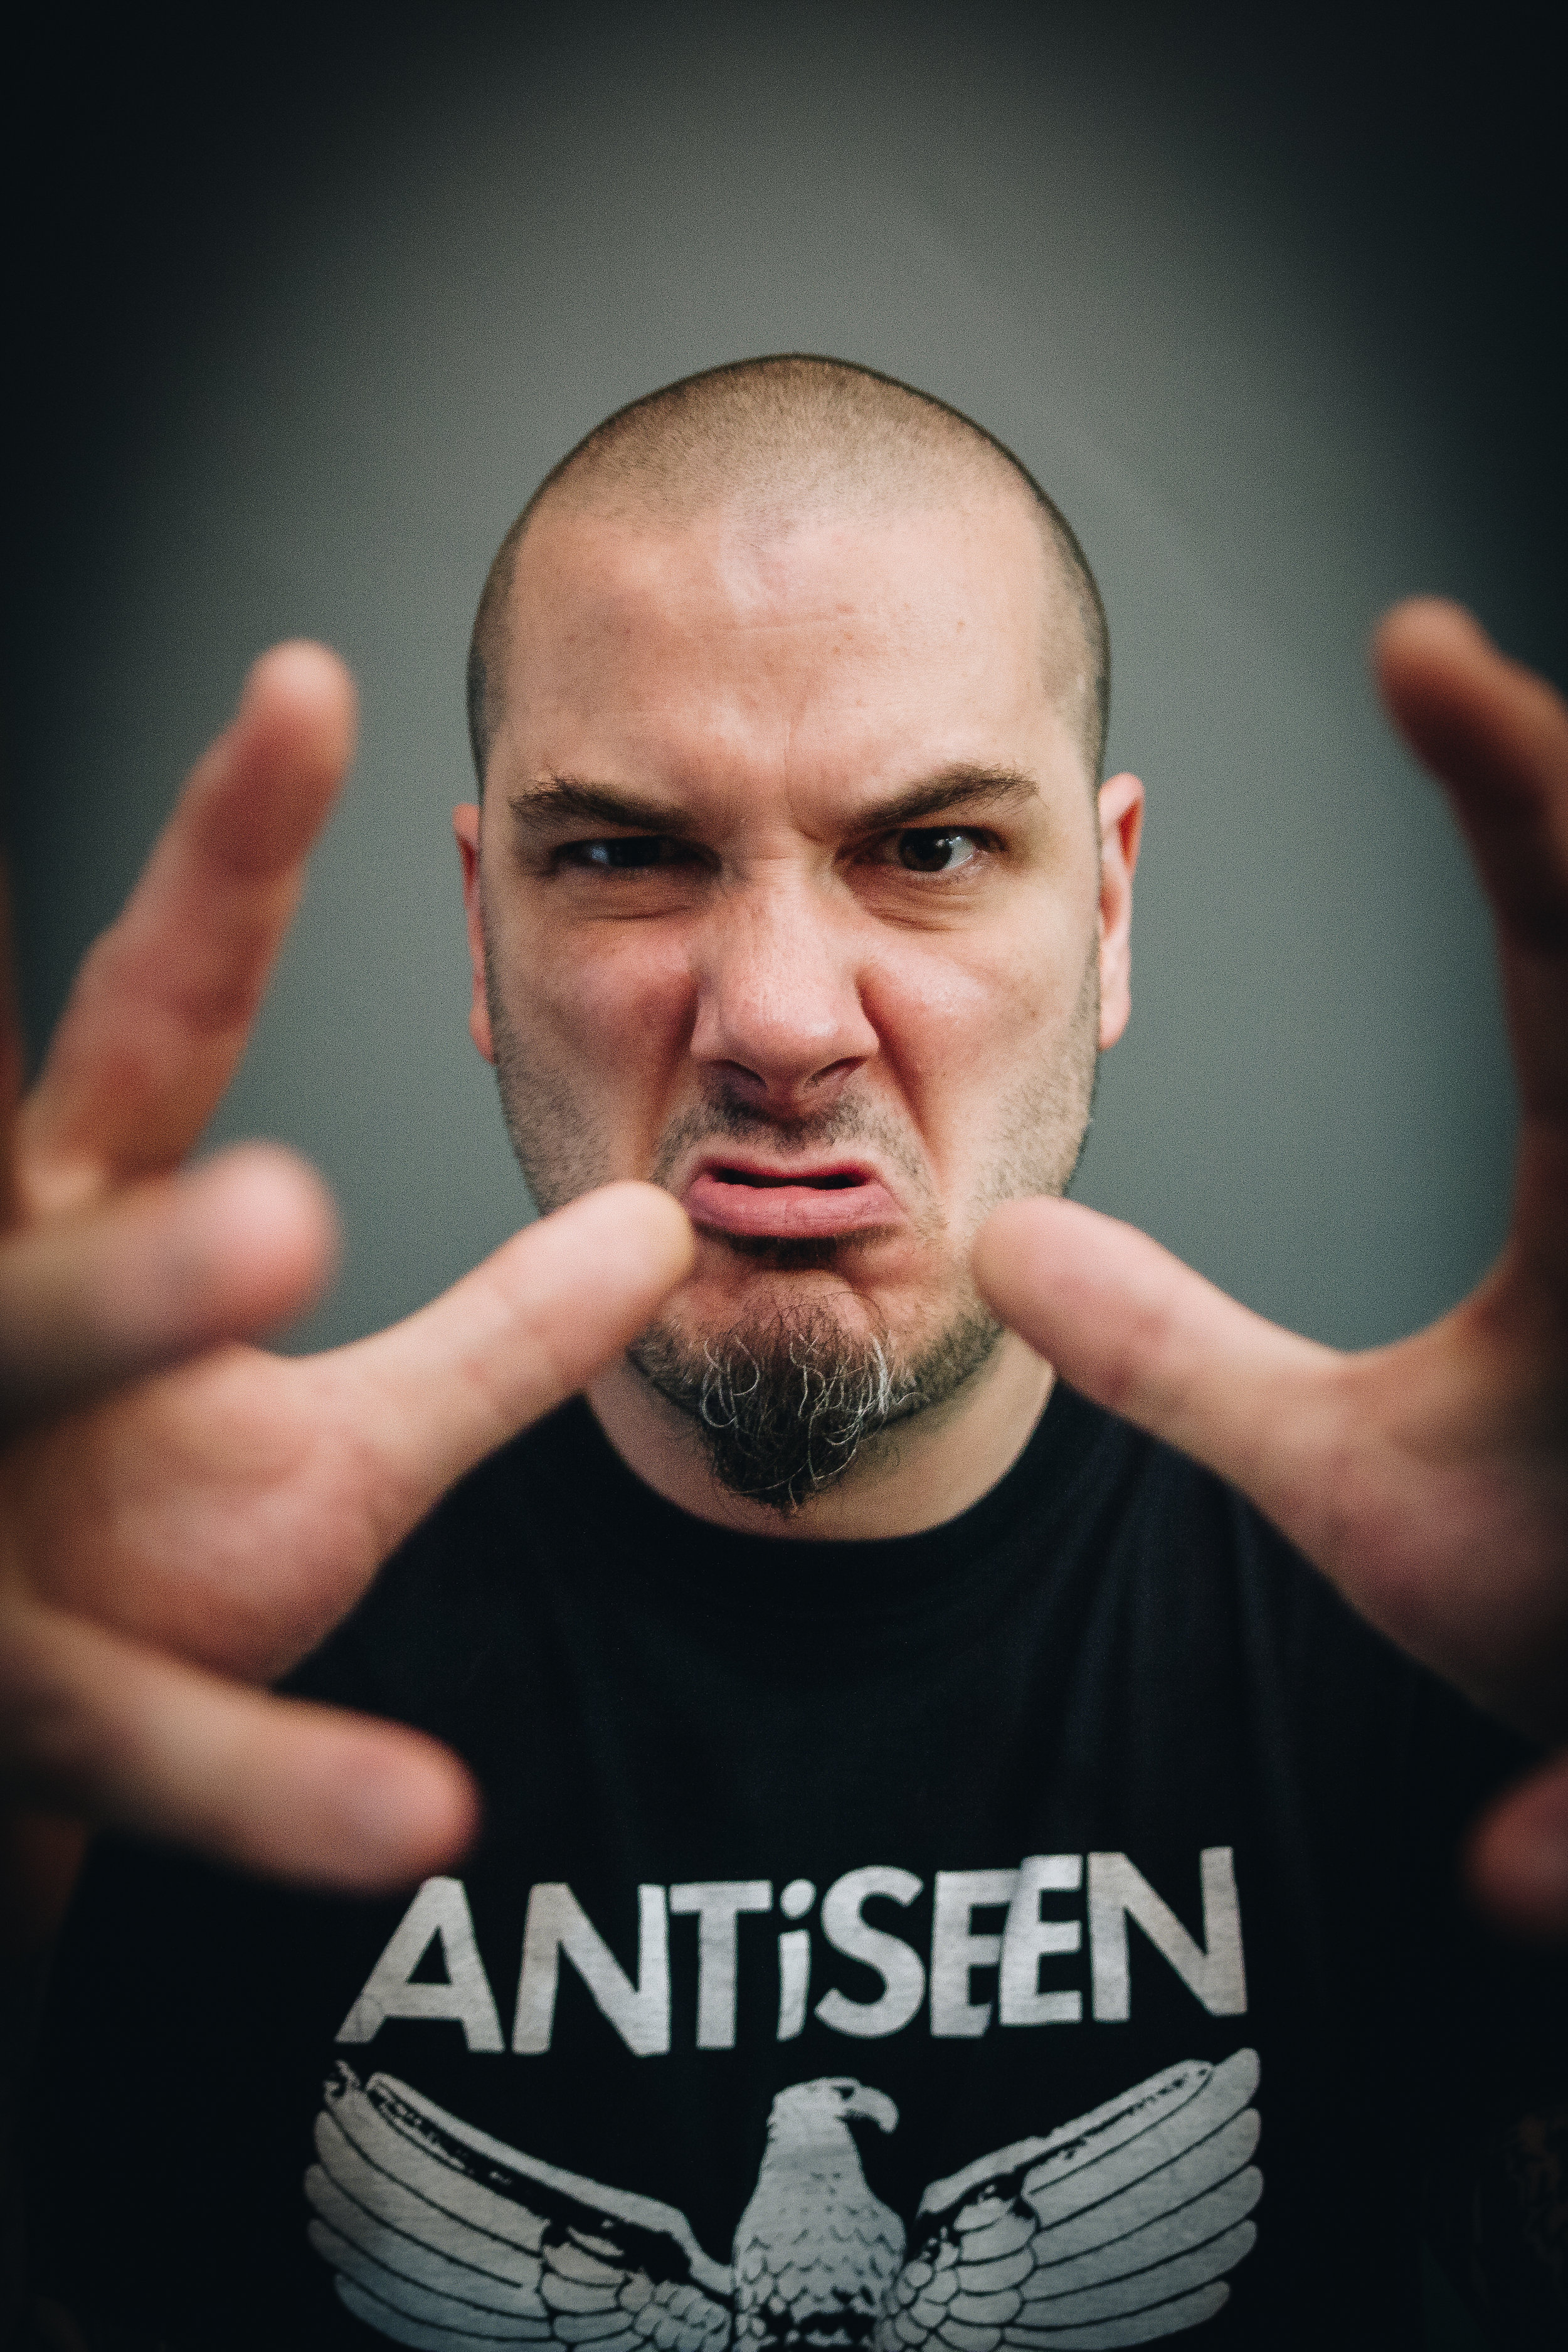 Phil Anselmo - April 2013 - Estevam Romera - IMG_5641.jpg